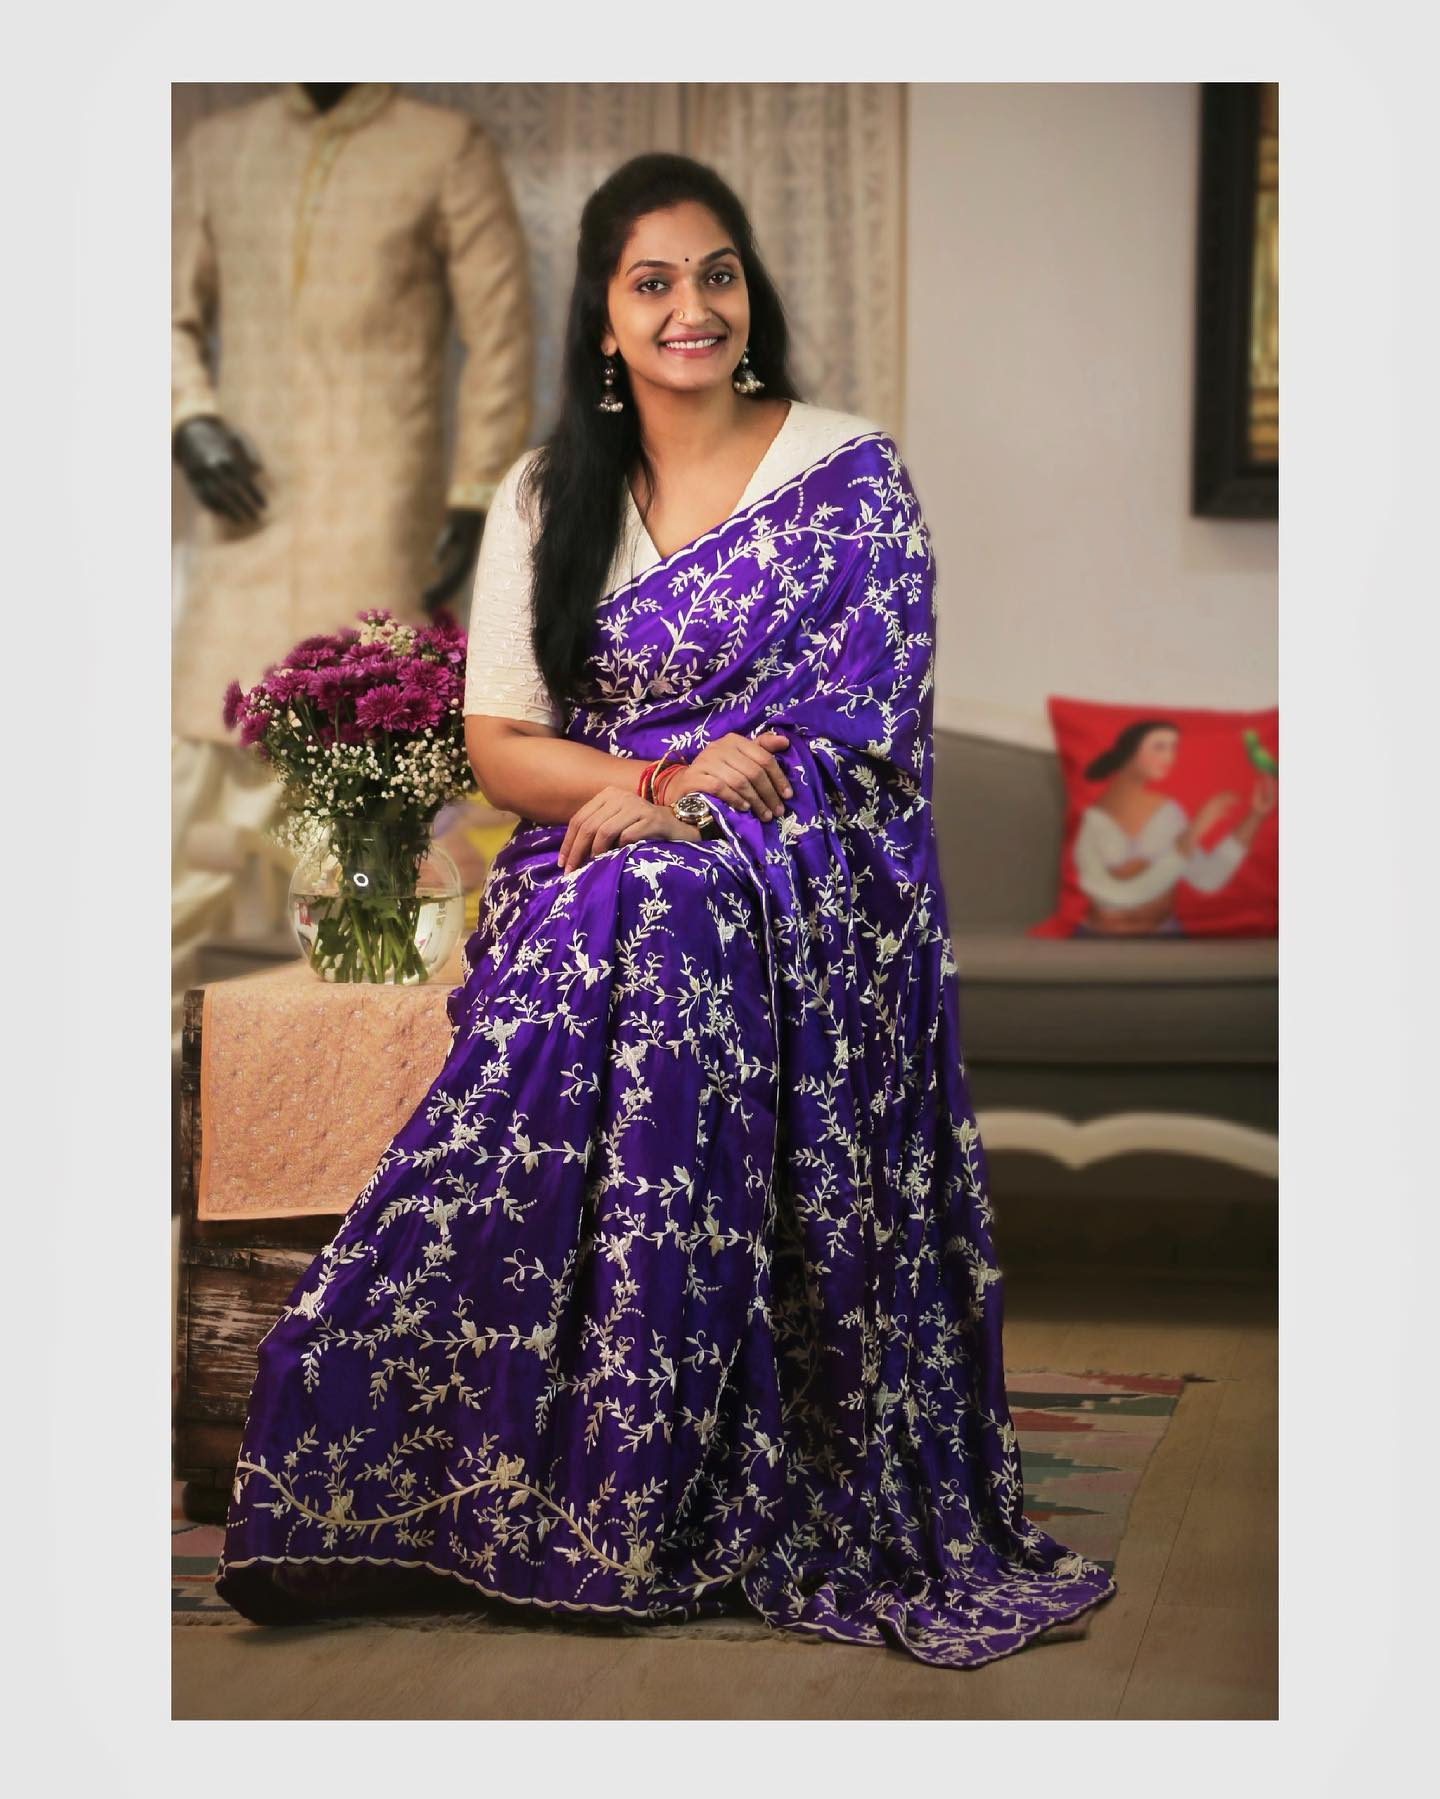 A Parsi Gara saree which is known for the intricate embroidery. 2021-06-08